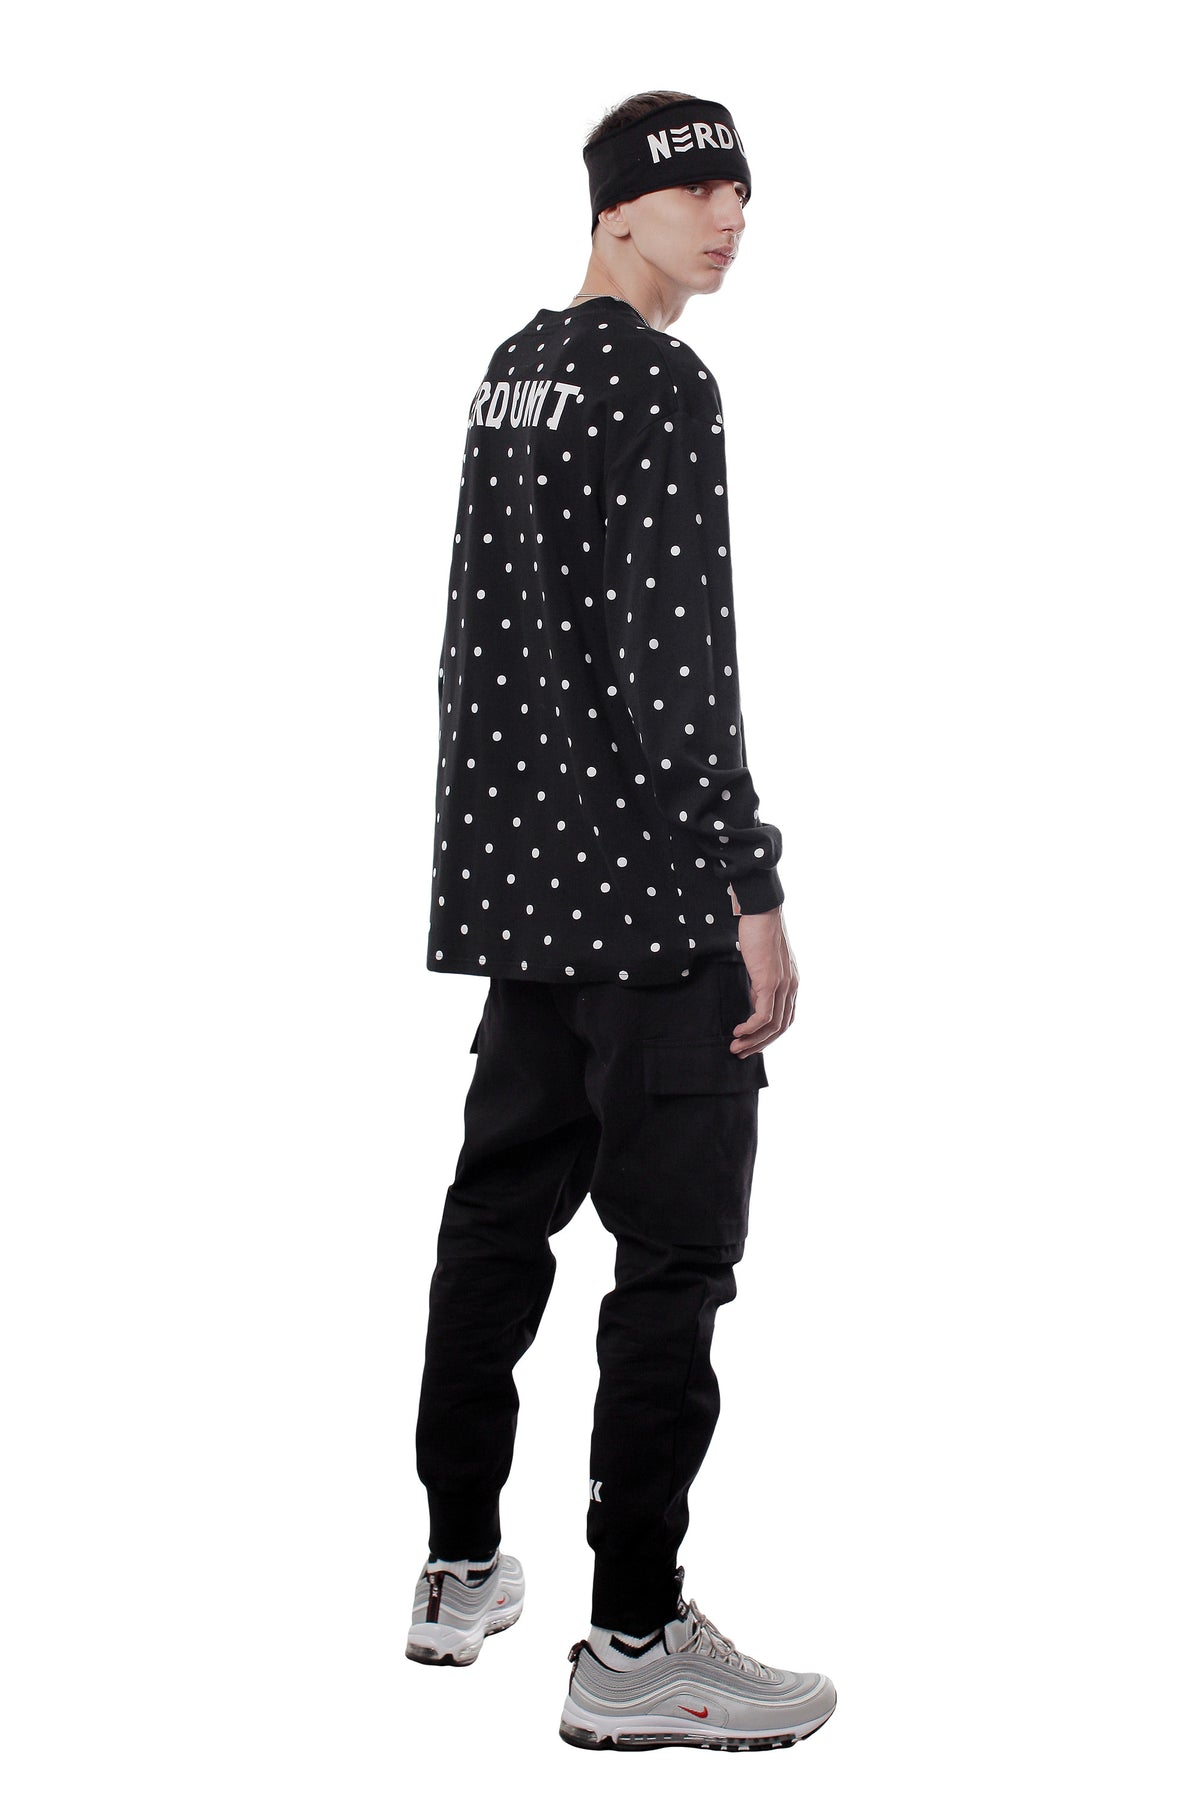 POLKA DOTS LONG SLEEVES TEE ( ポルカドット ロングスリーブ Tシャツ )